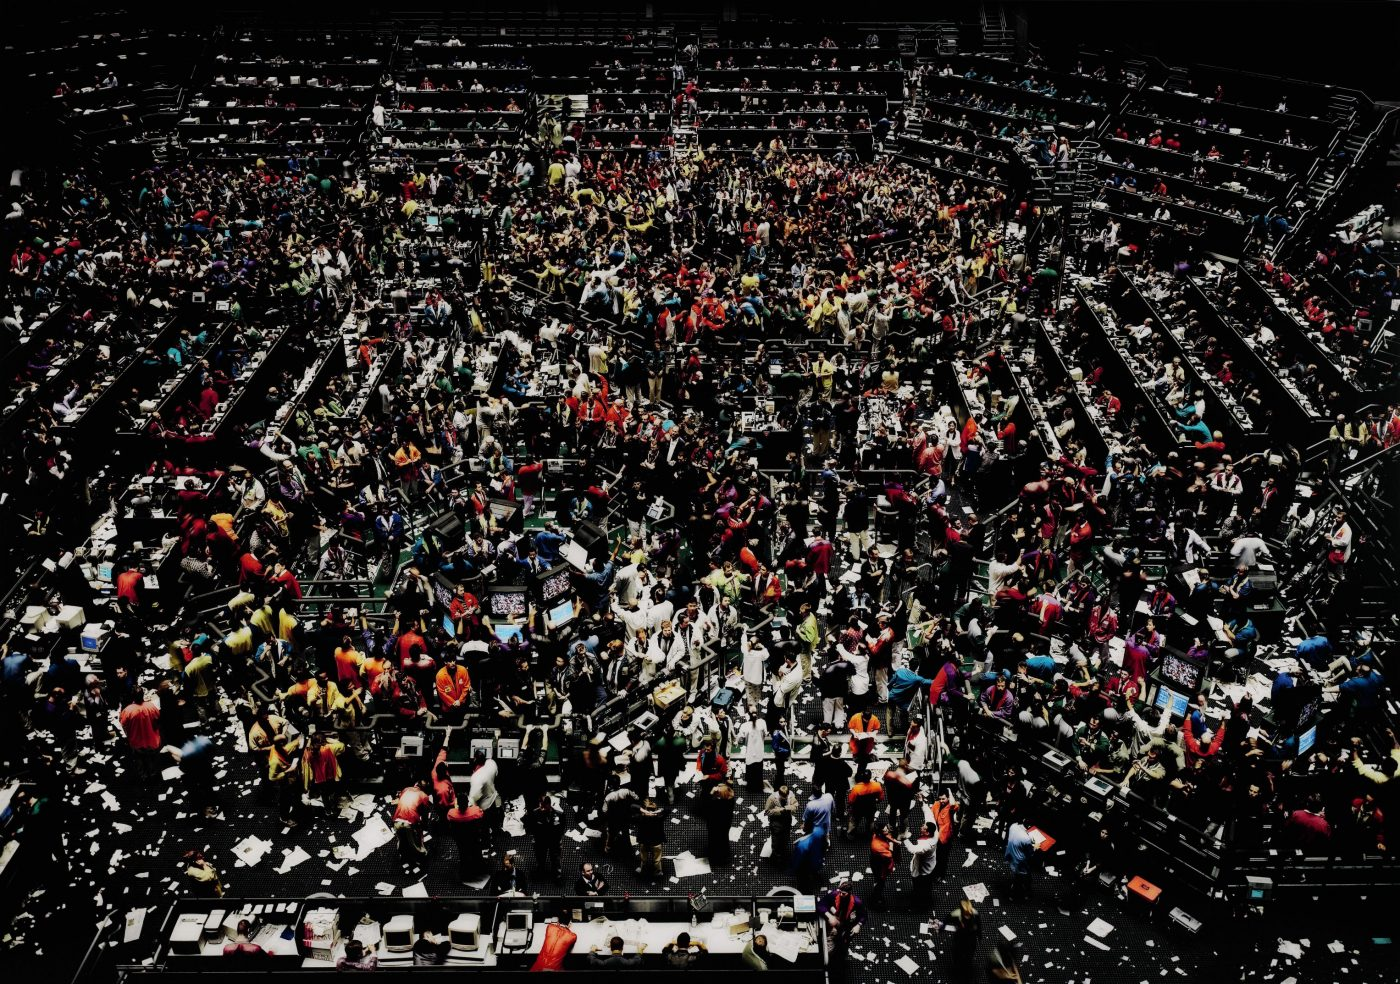 Andreas Gursky, Chicago board of trade III 1999-2009